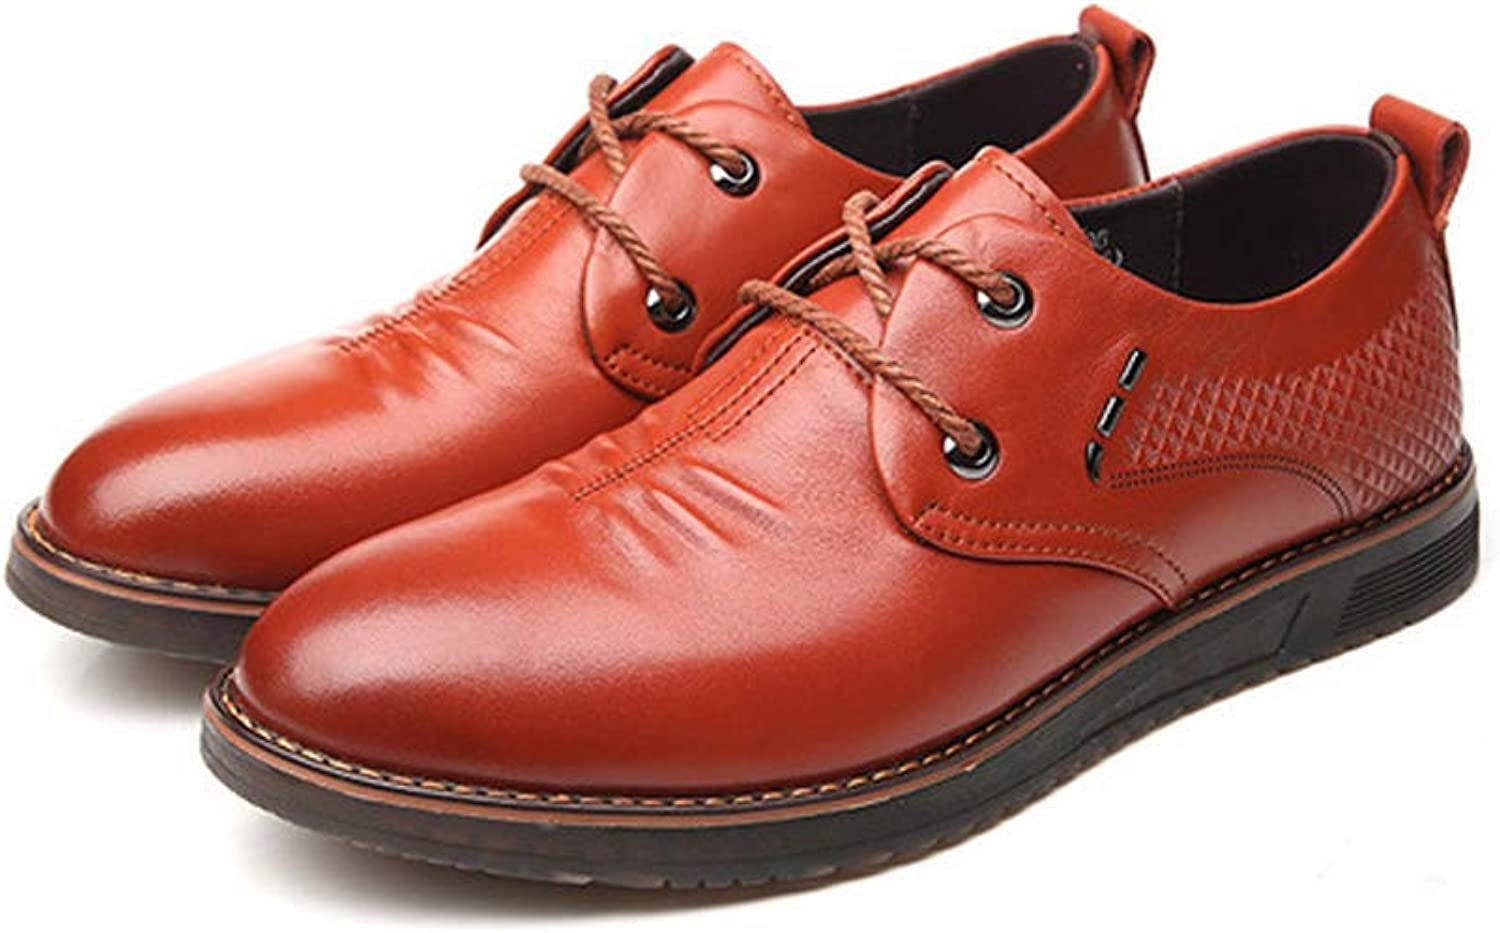 Spring Casual shoes Men's First Layer Leather shoes Business Work shoes Fashion Single shoes Driving shoes Loafers